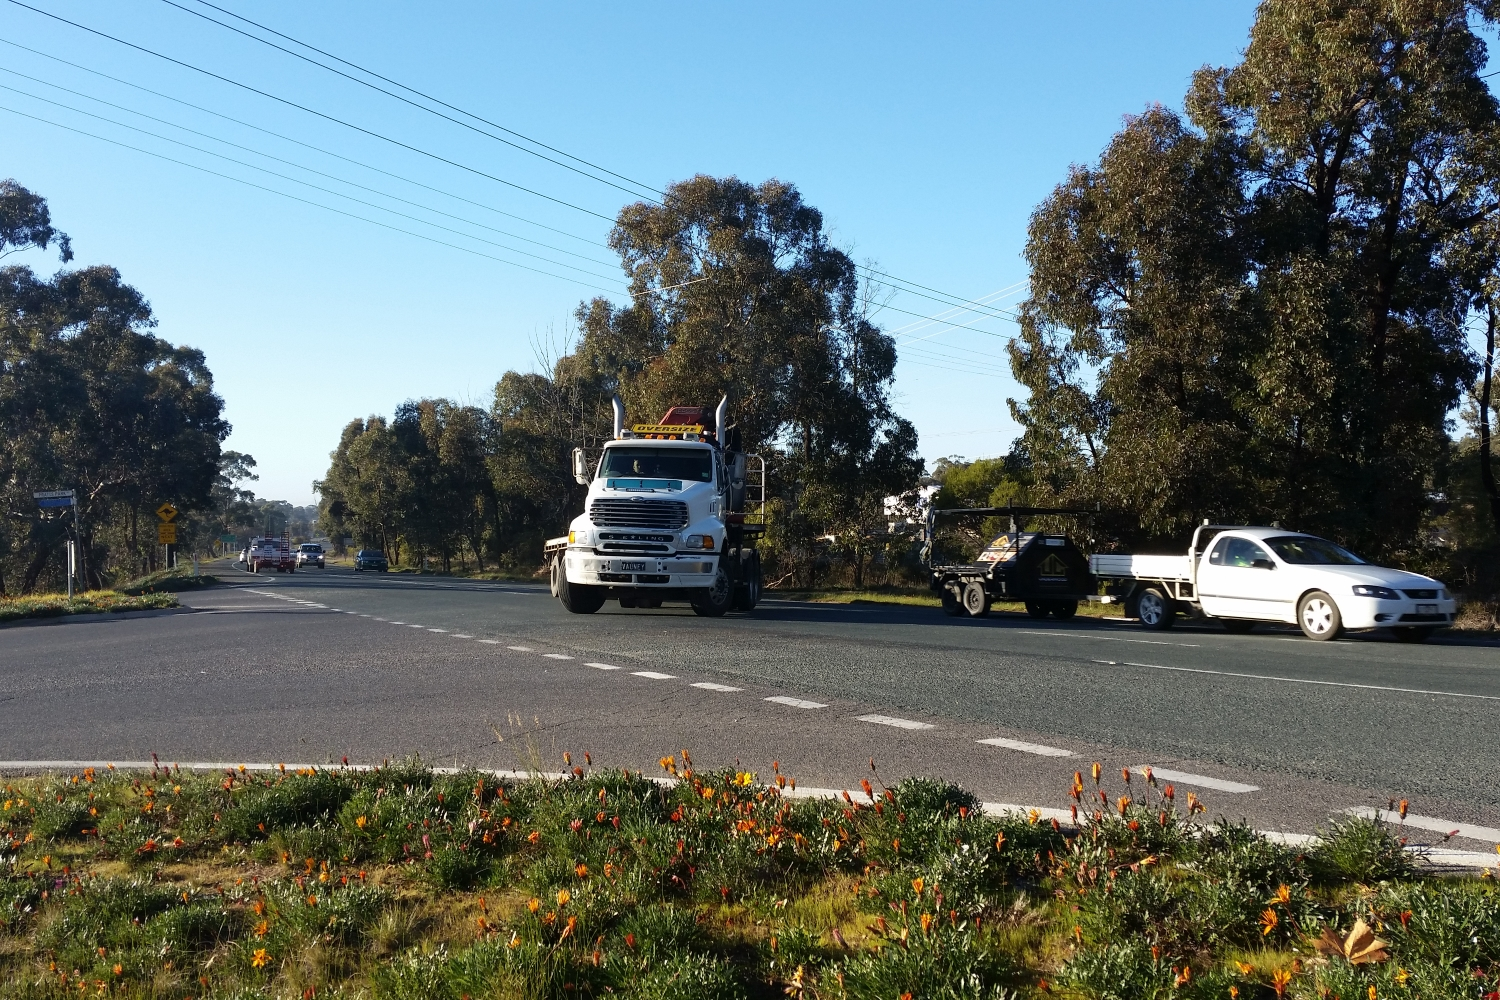 Truck turns at Pratts Park Road intersection